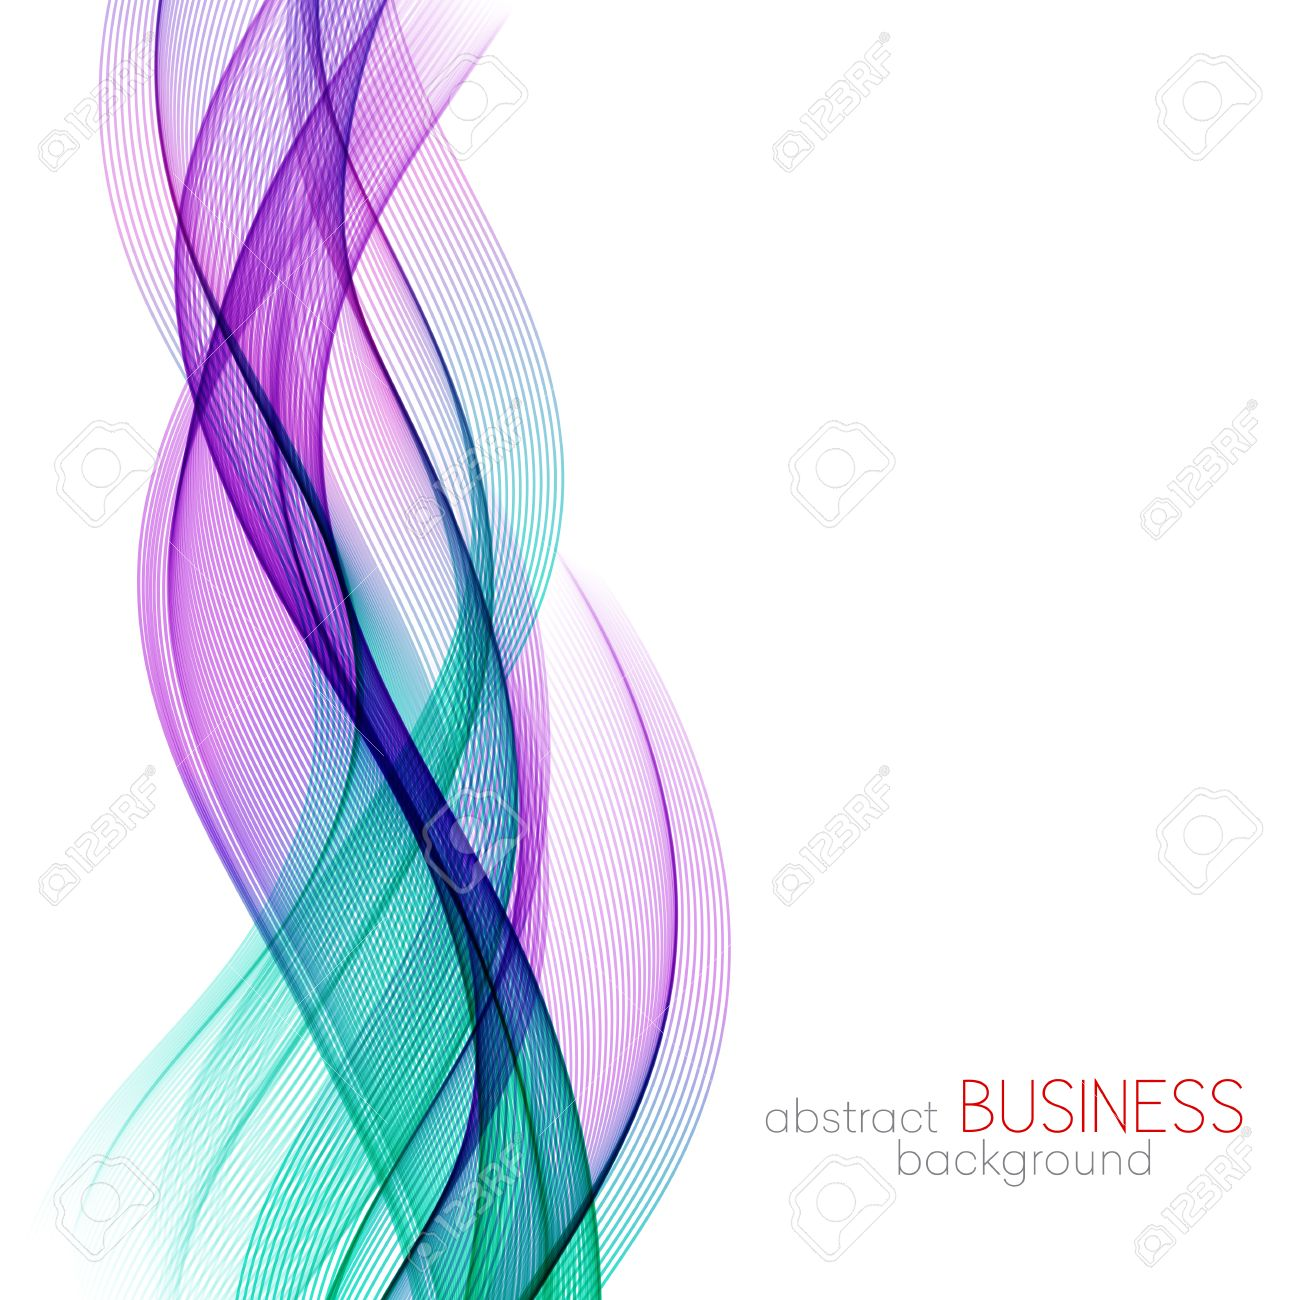 Abstract vector background, blue and purple transparent waved lines for brochure, website, flyer design. Blue smoke wave. Blue and purple wavy background - 56342938